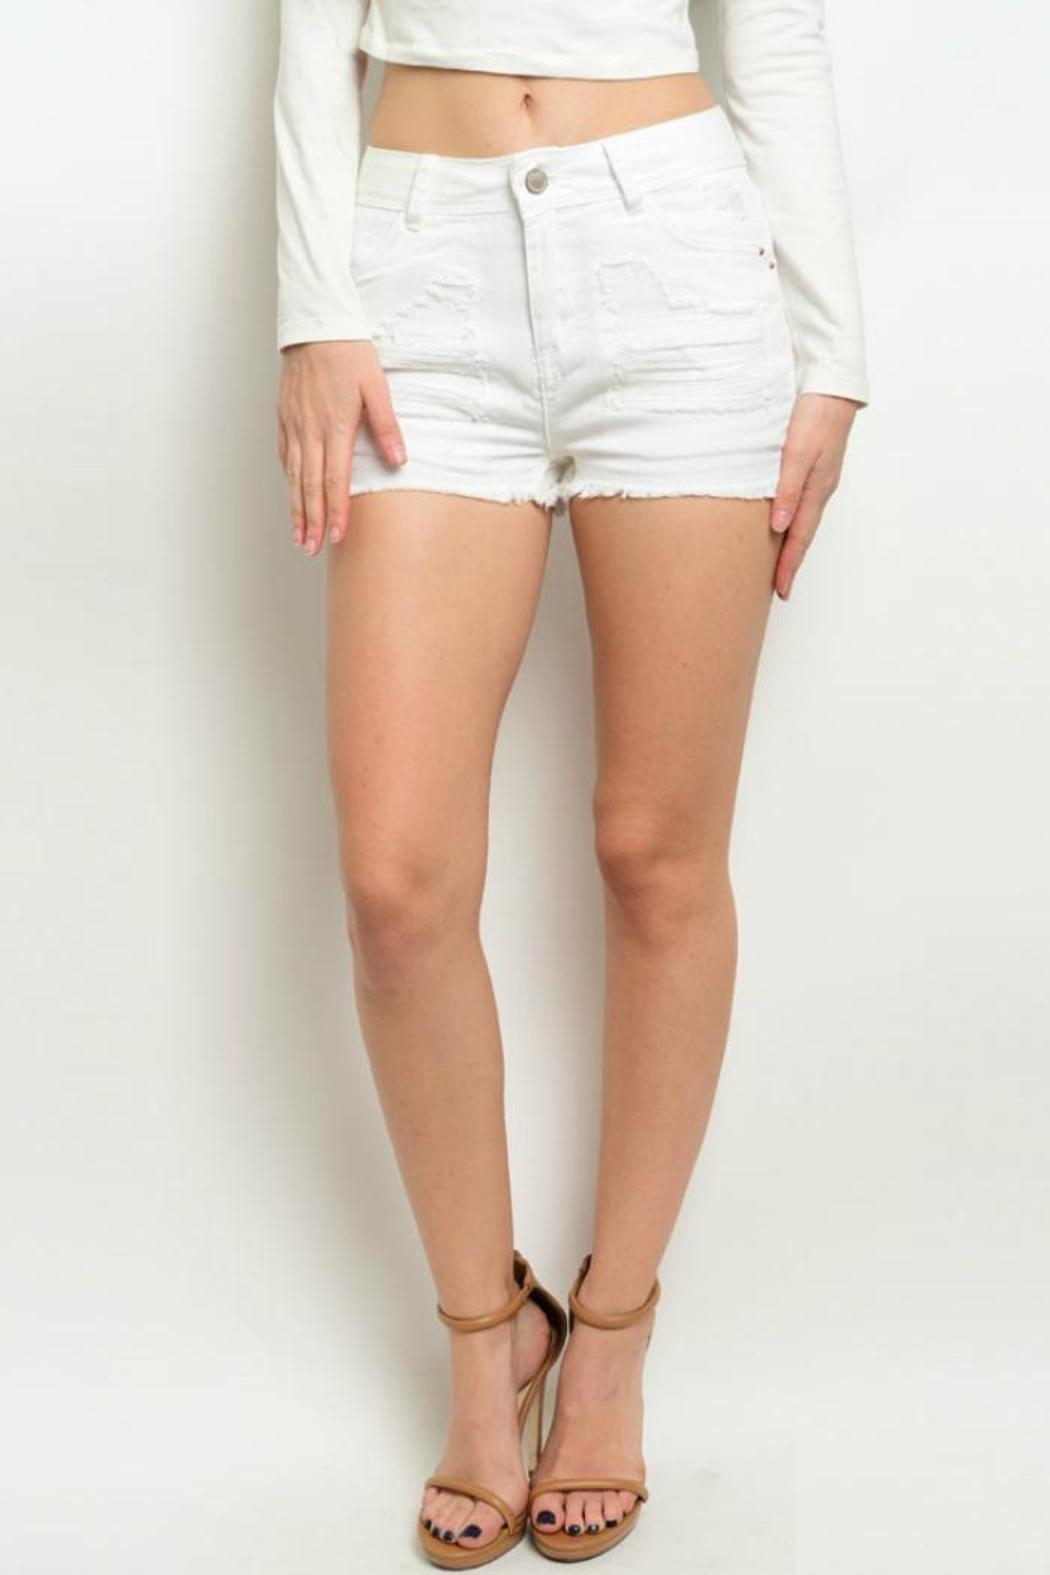 Hart Denim White Distressed Shorts from Colorado by twill tradE ...